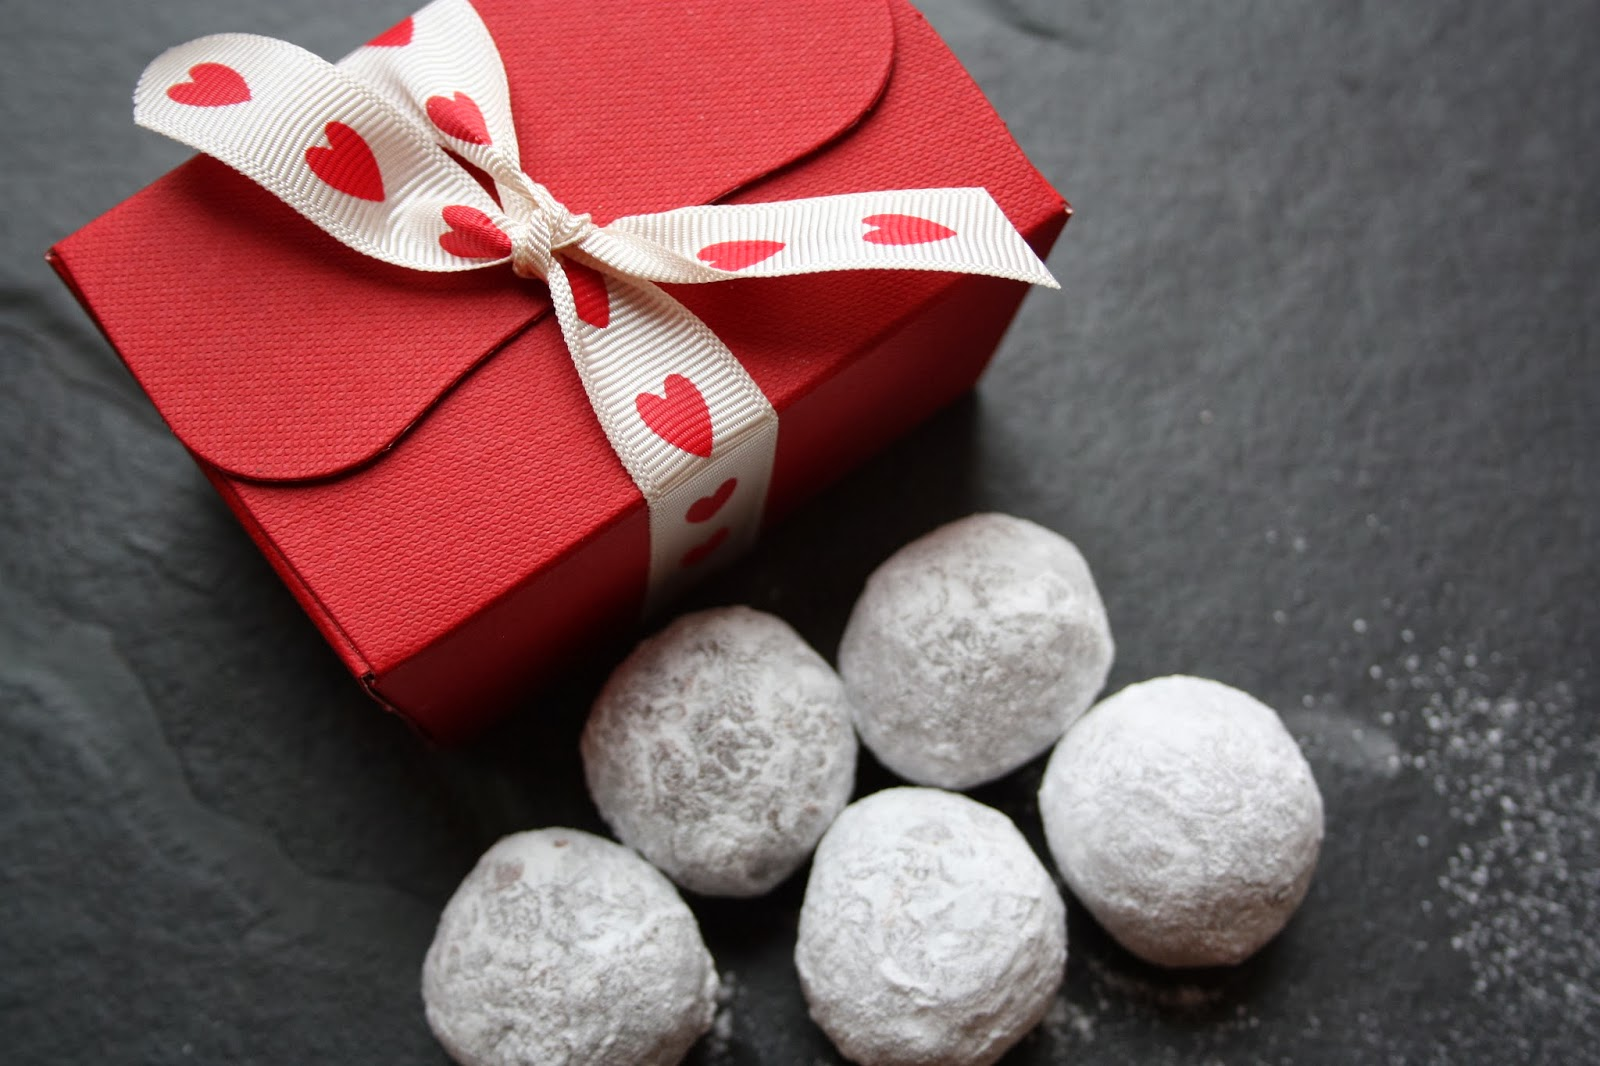 Champagne truffles, The Chocolate Truffle Company